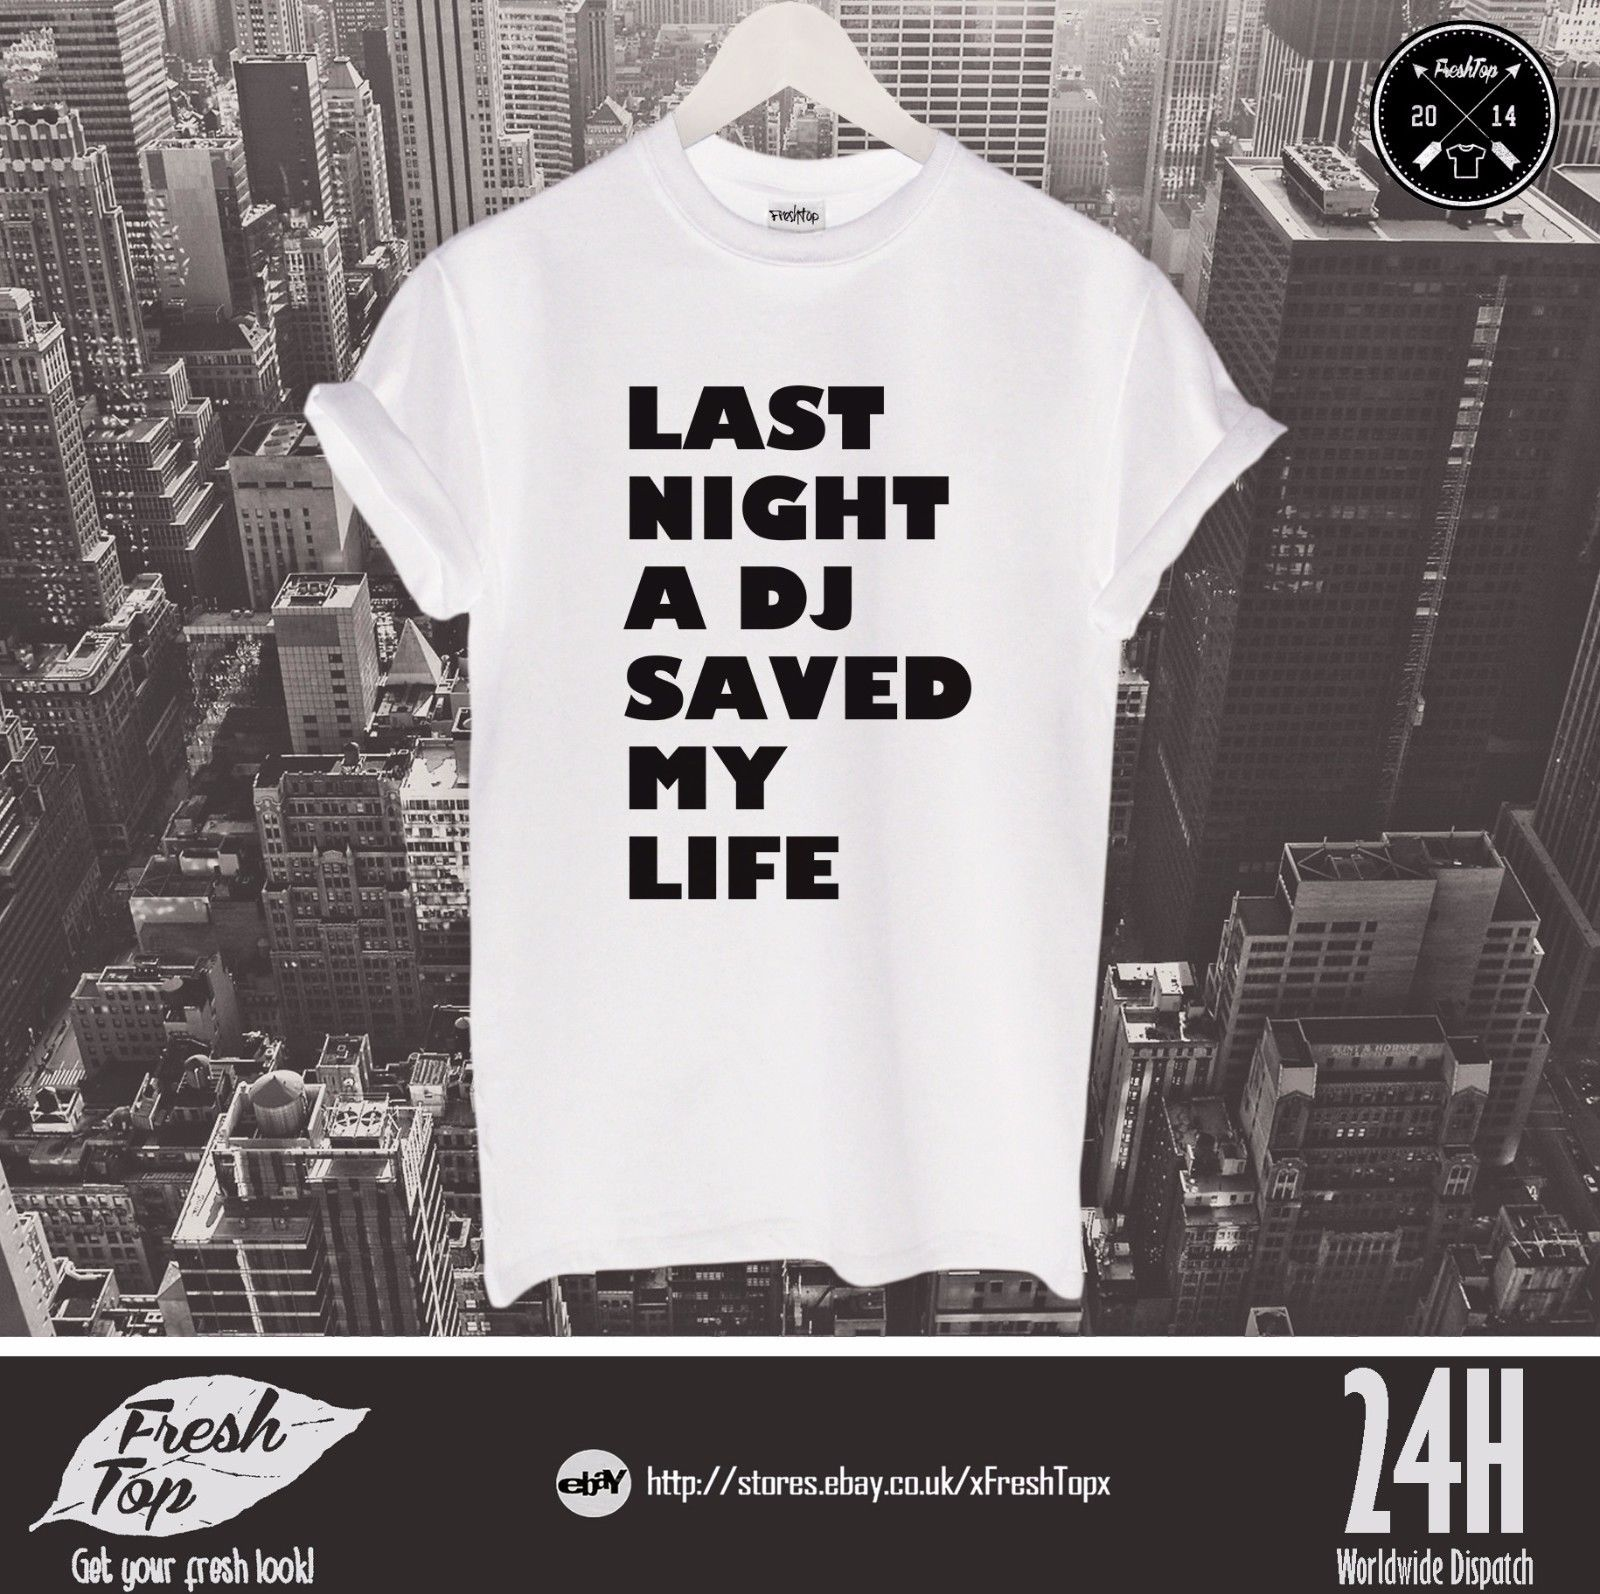 Last Night A DJ Saved My Life T Shirt Top Funny Club Party Clubbing Gift Present Harajuku Tops Fashion Classic Unique t-Shirt